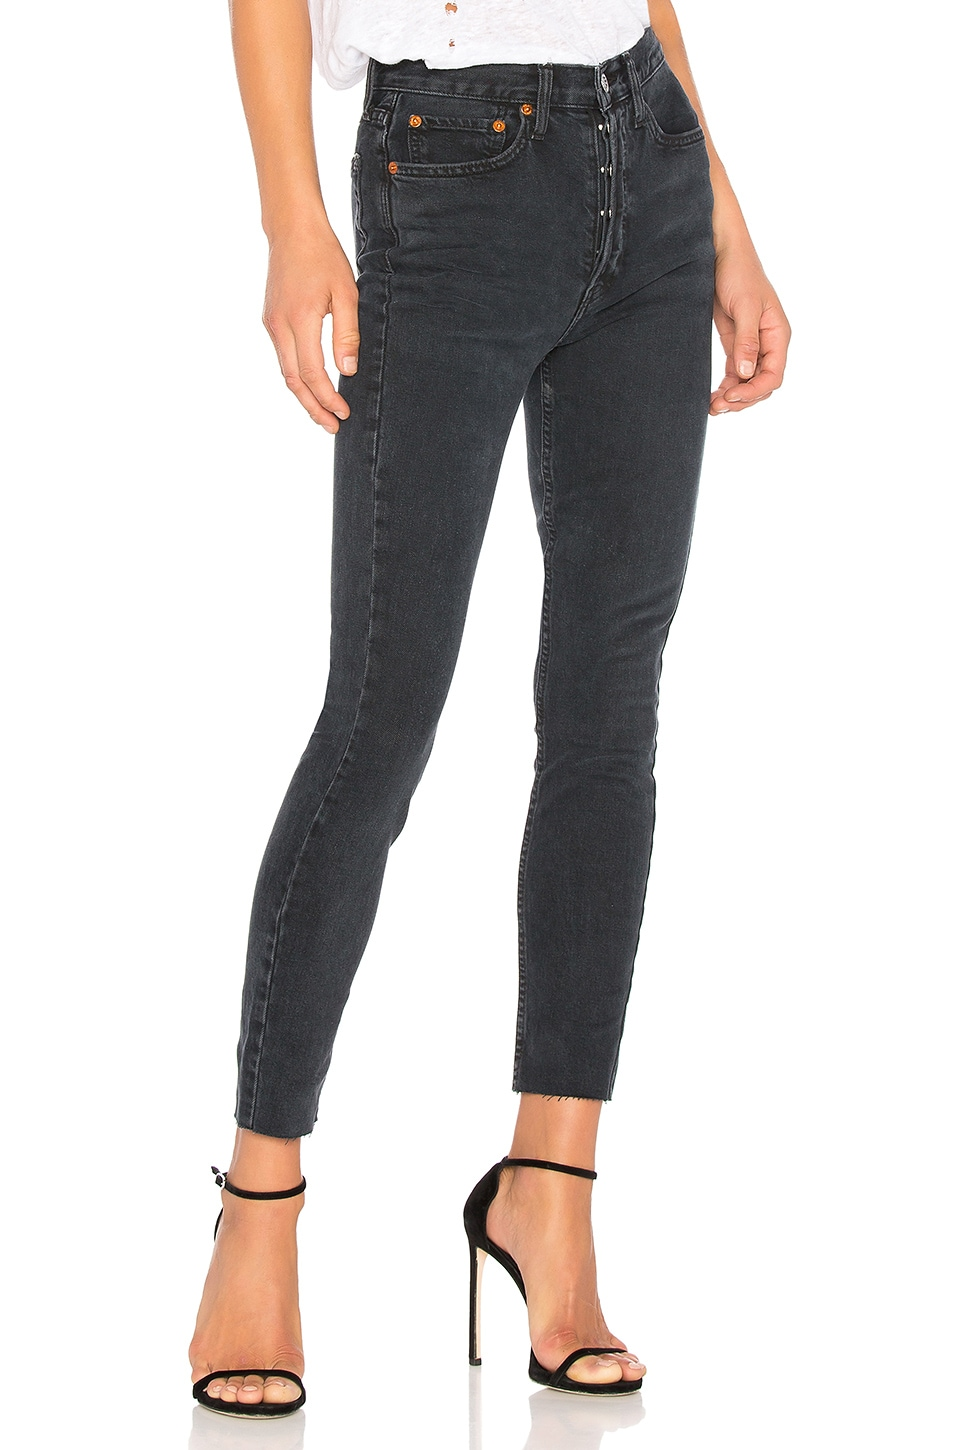 RE/DONE Originals High Rise Ankle Crop with Stretch in Worn Black